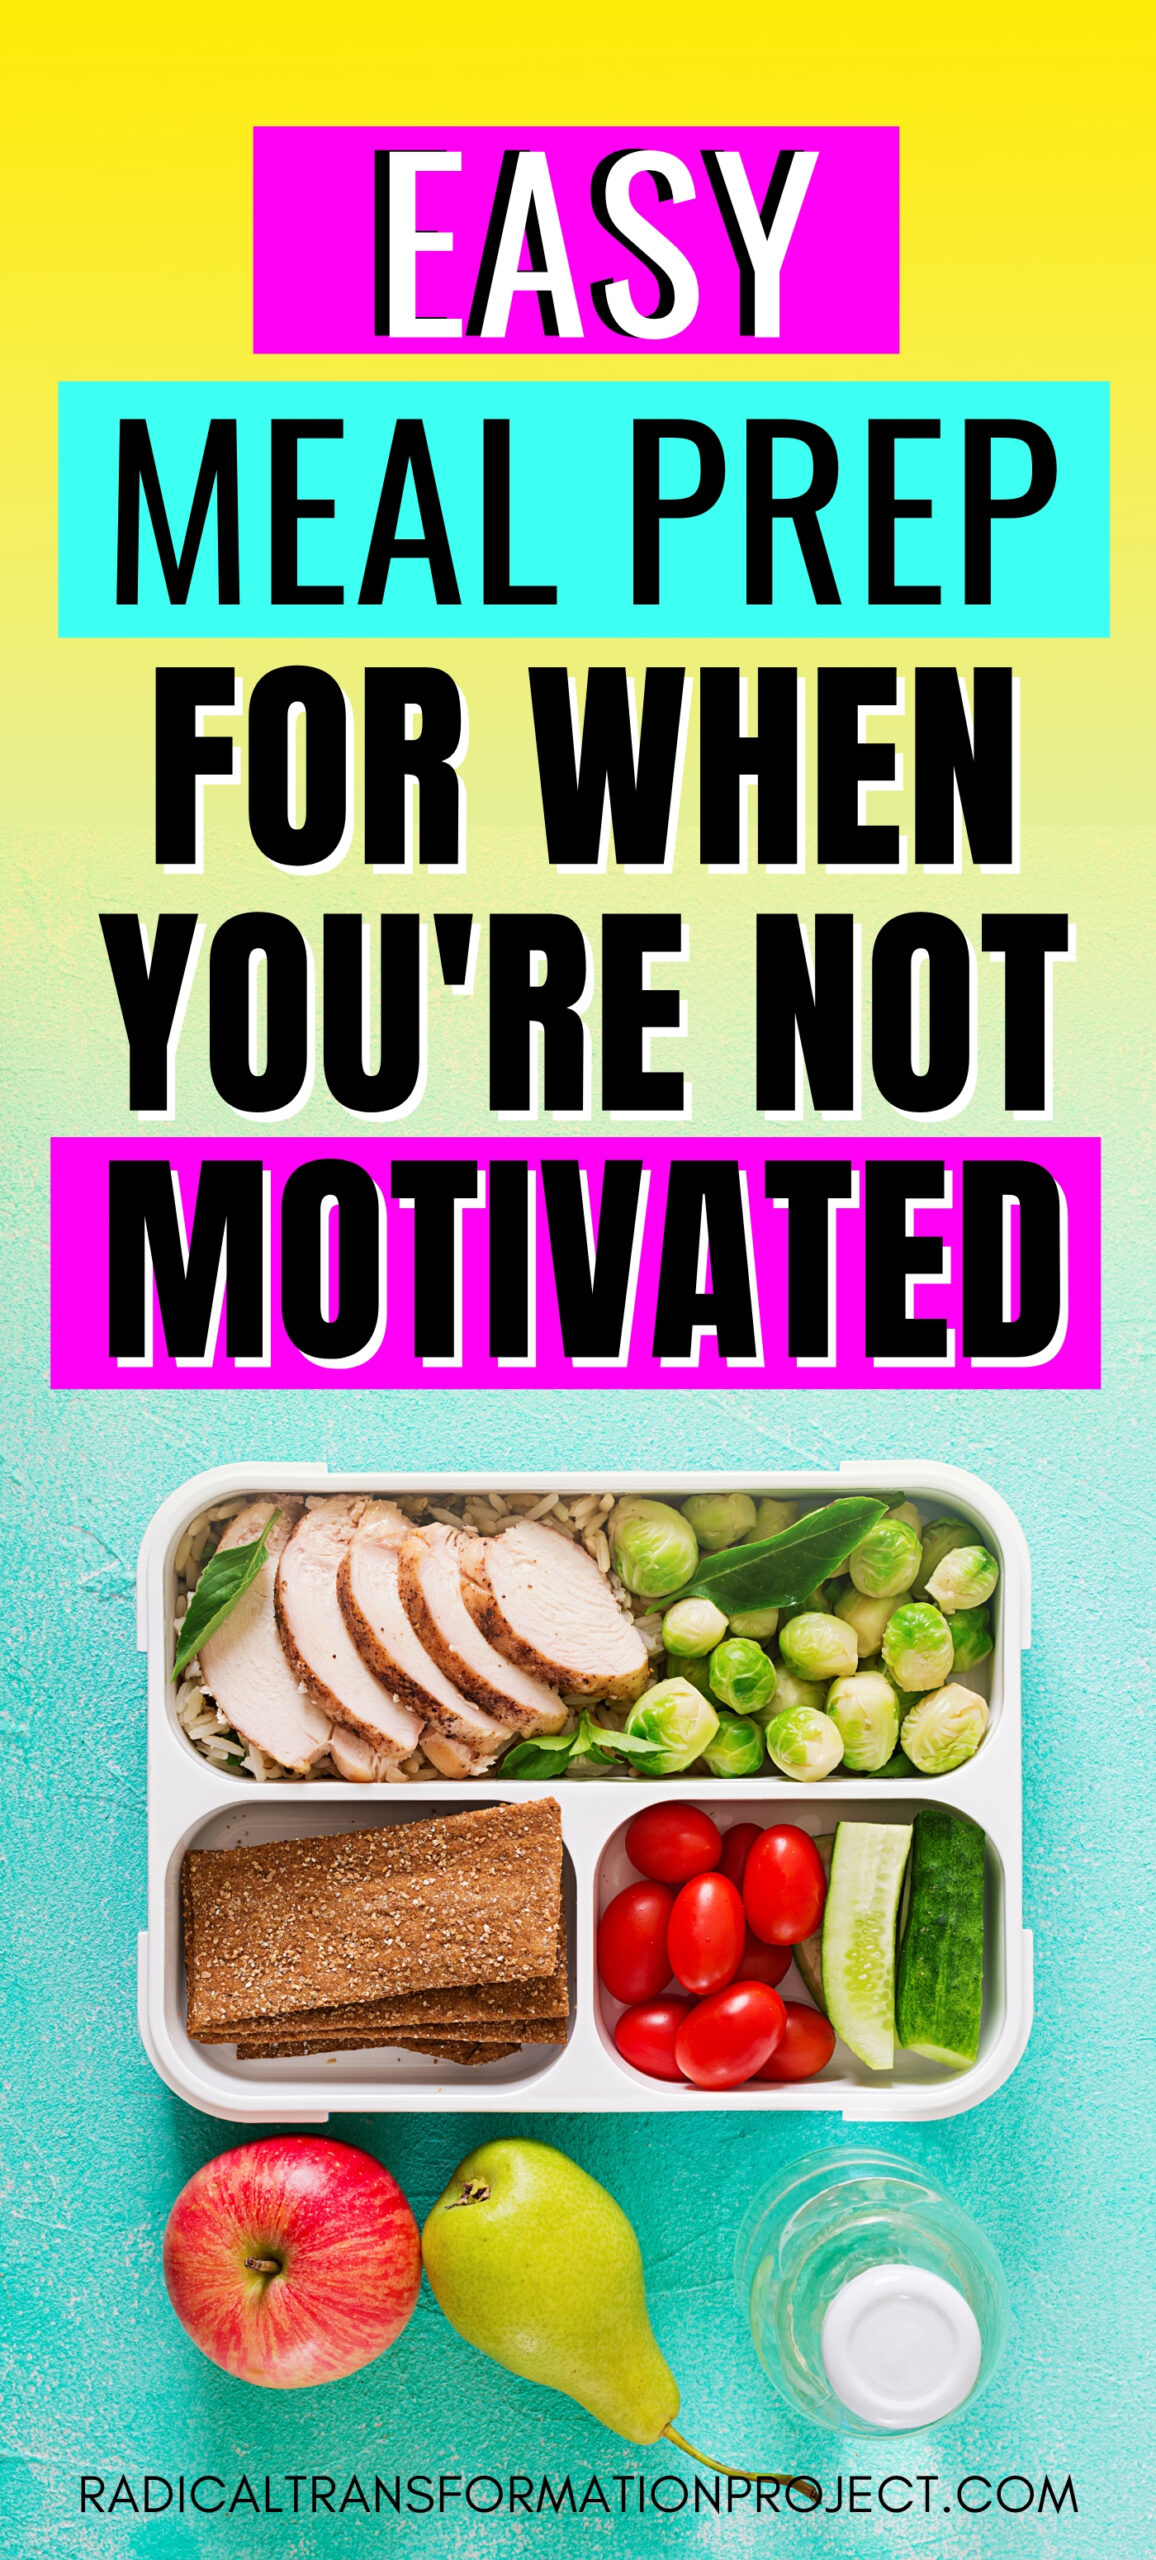 easy meal prep for when you're not motivated